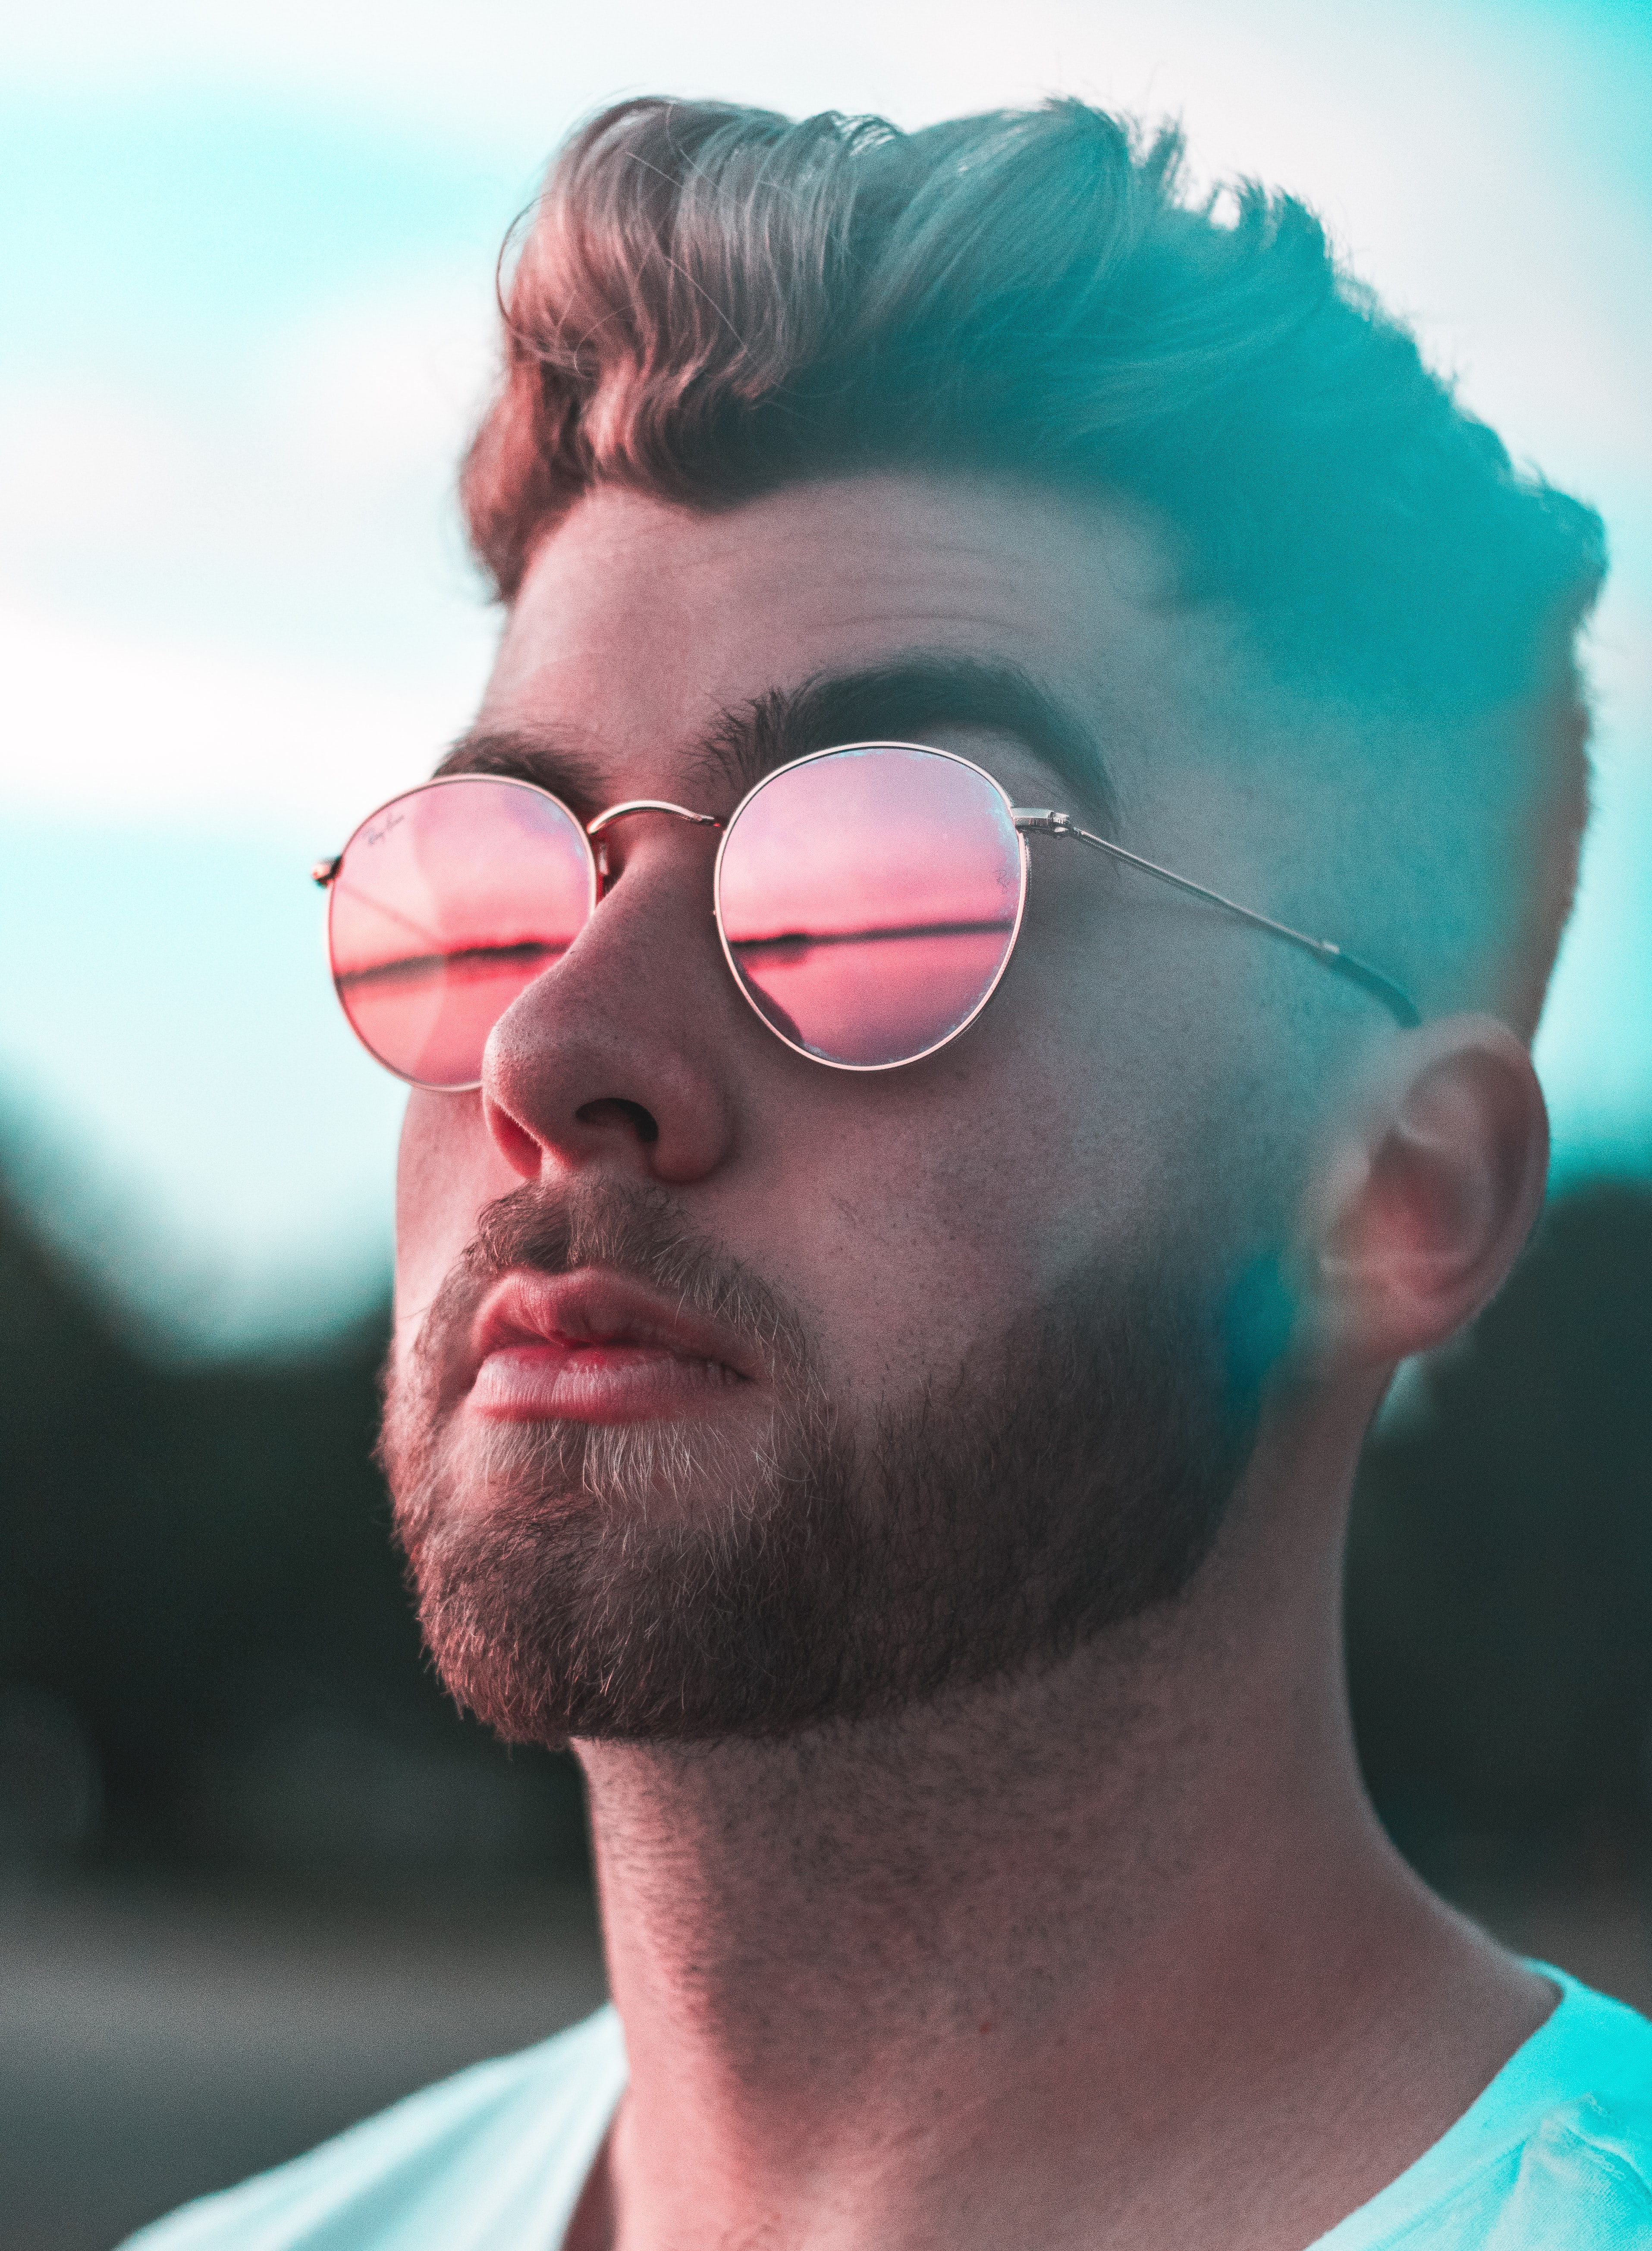 A bearded man wearing reflective sunglasses looks into the distance outdoors